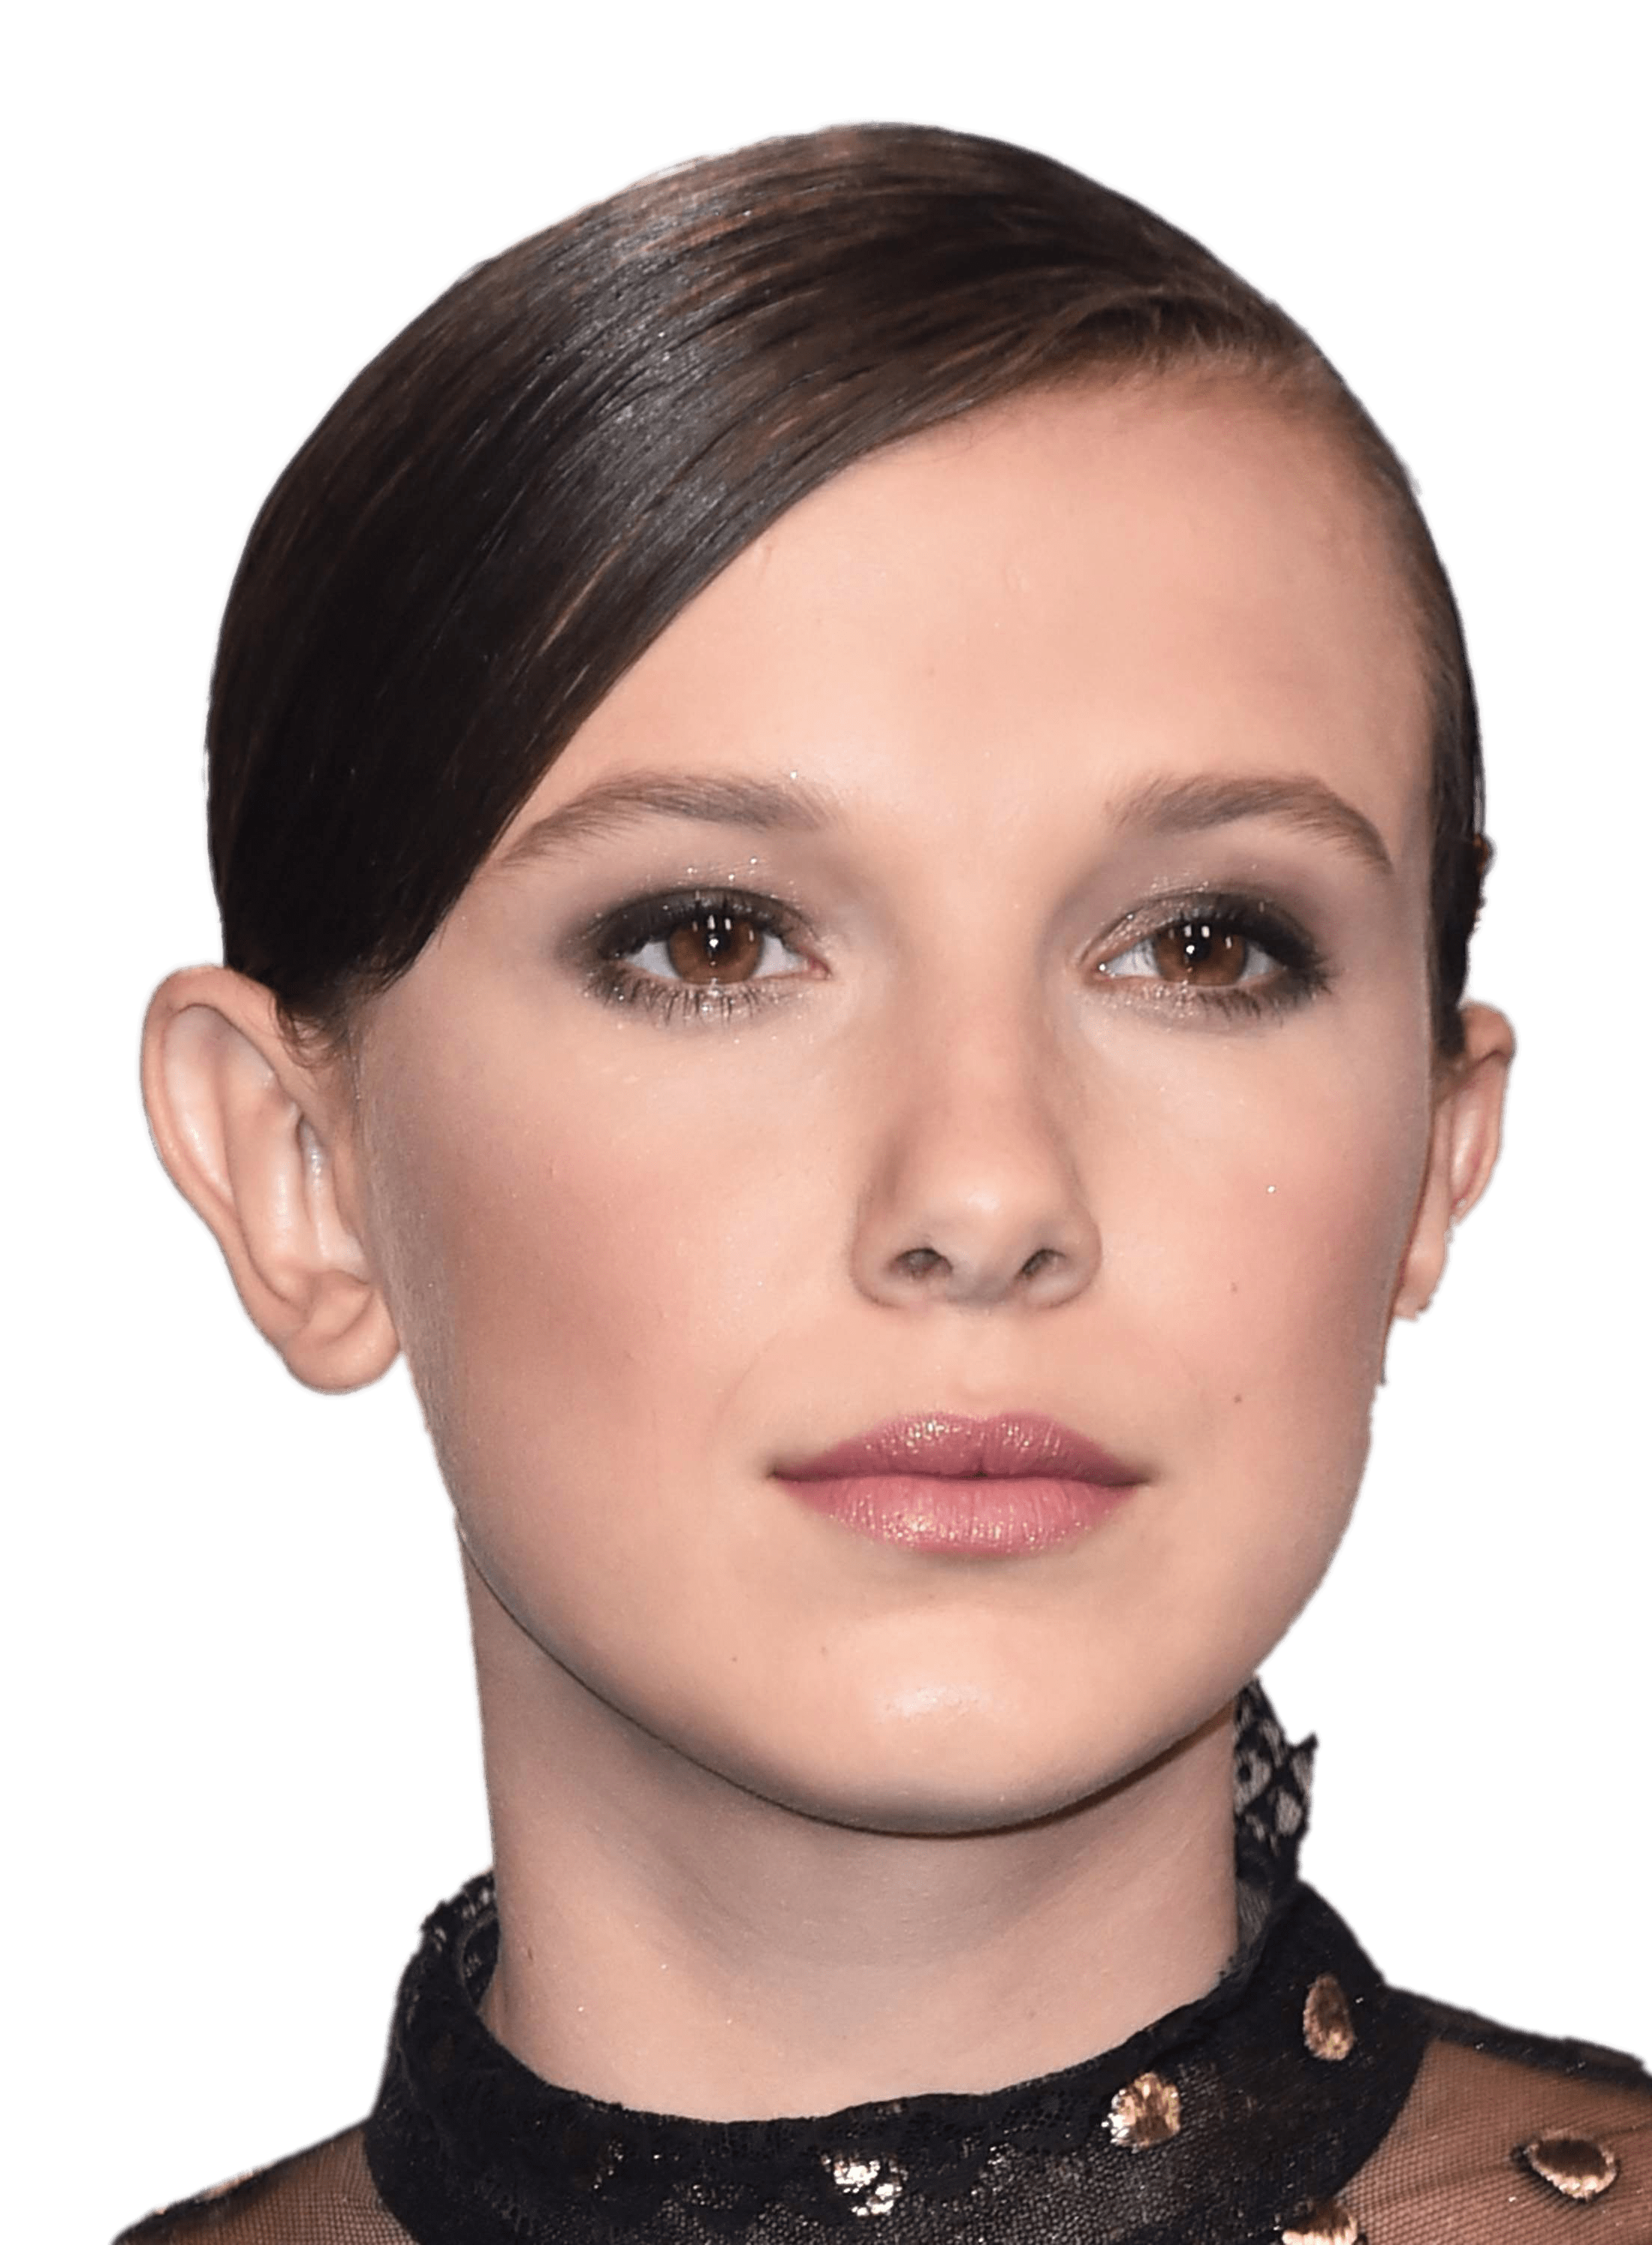 Millie Bobby Brown Delicate transparent PNG.